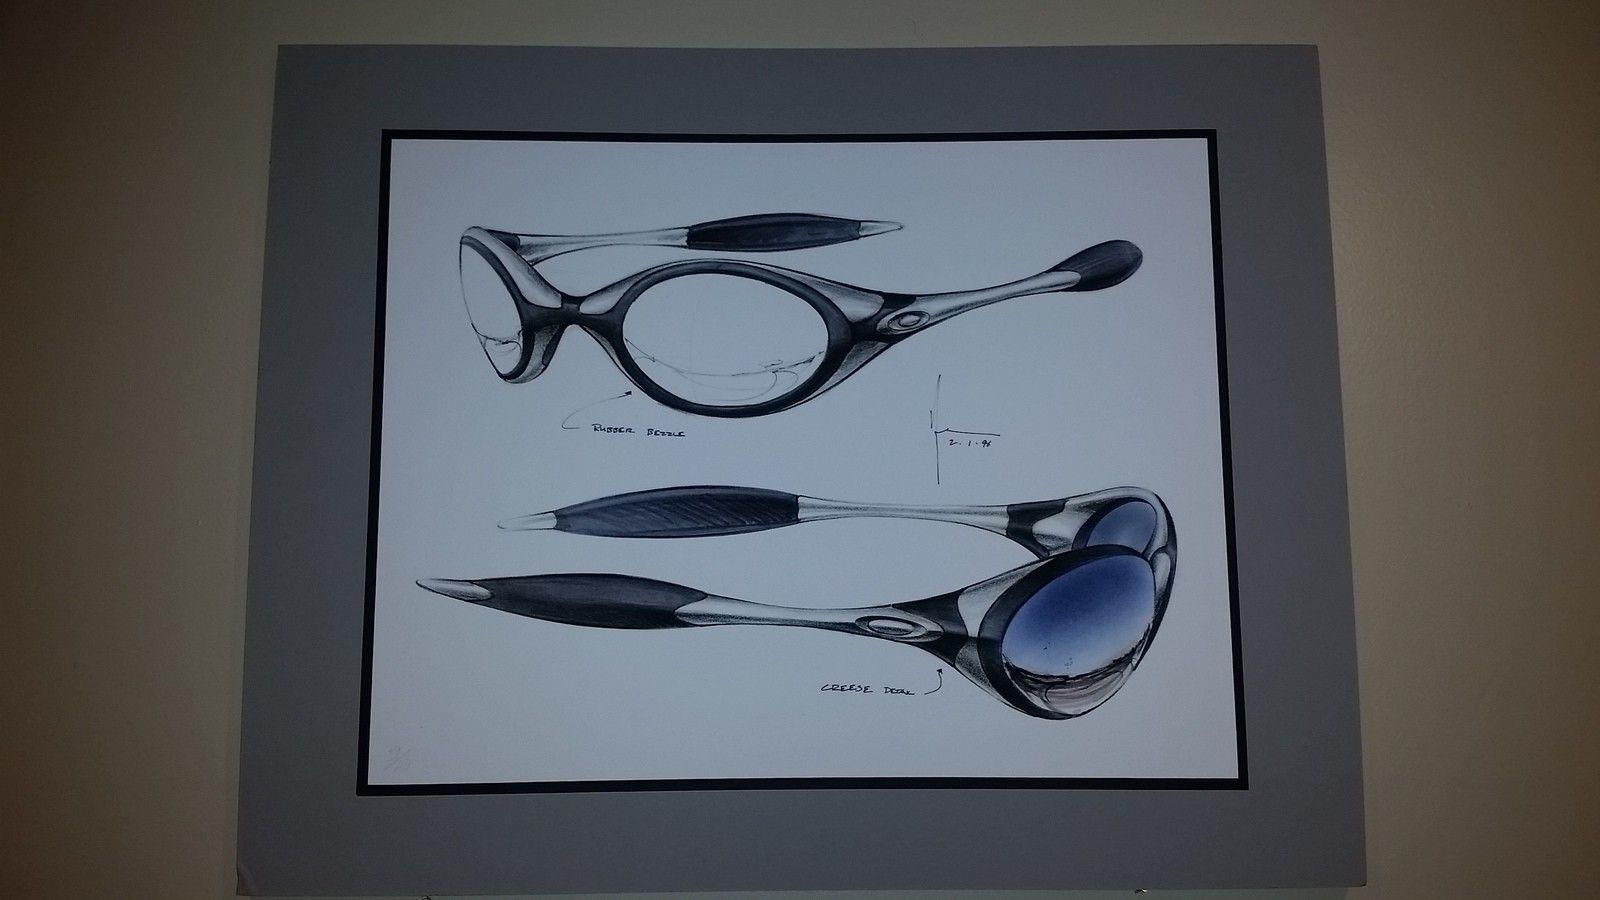 Oakley Giclee Romeo sketch/lithograph - 20151201_235803.jpg